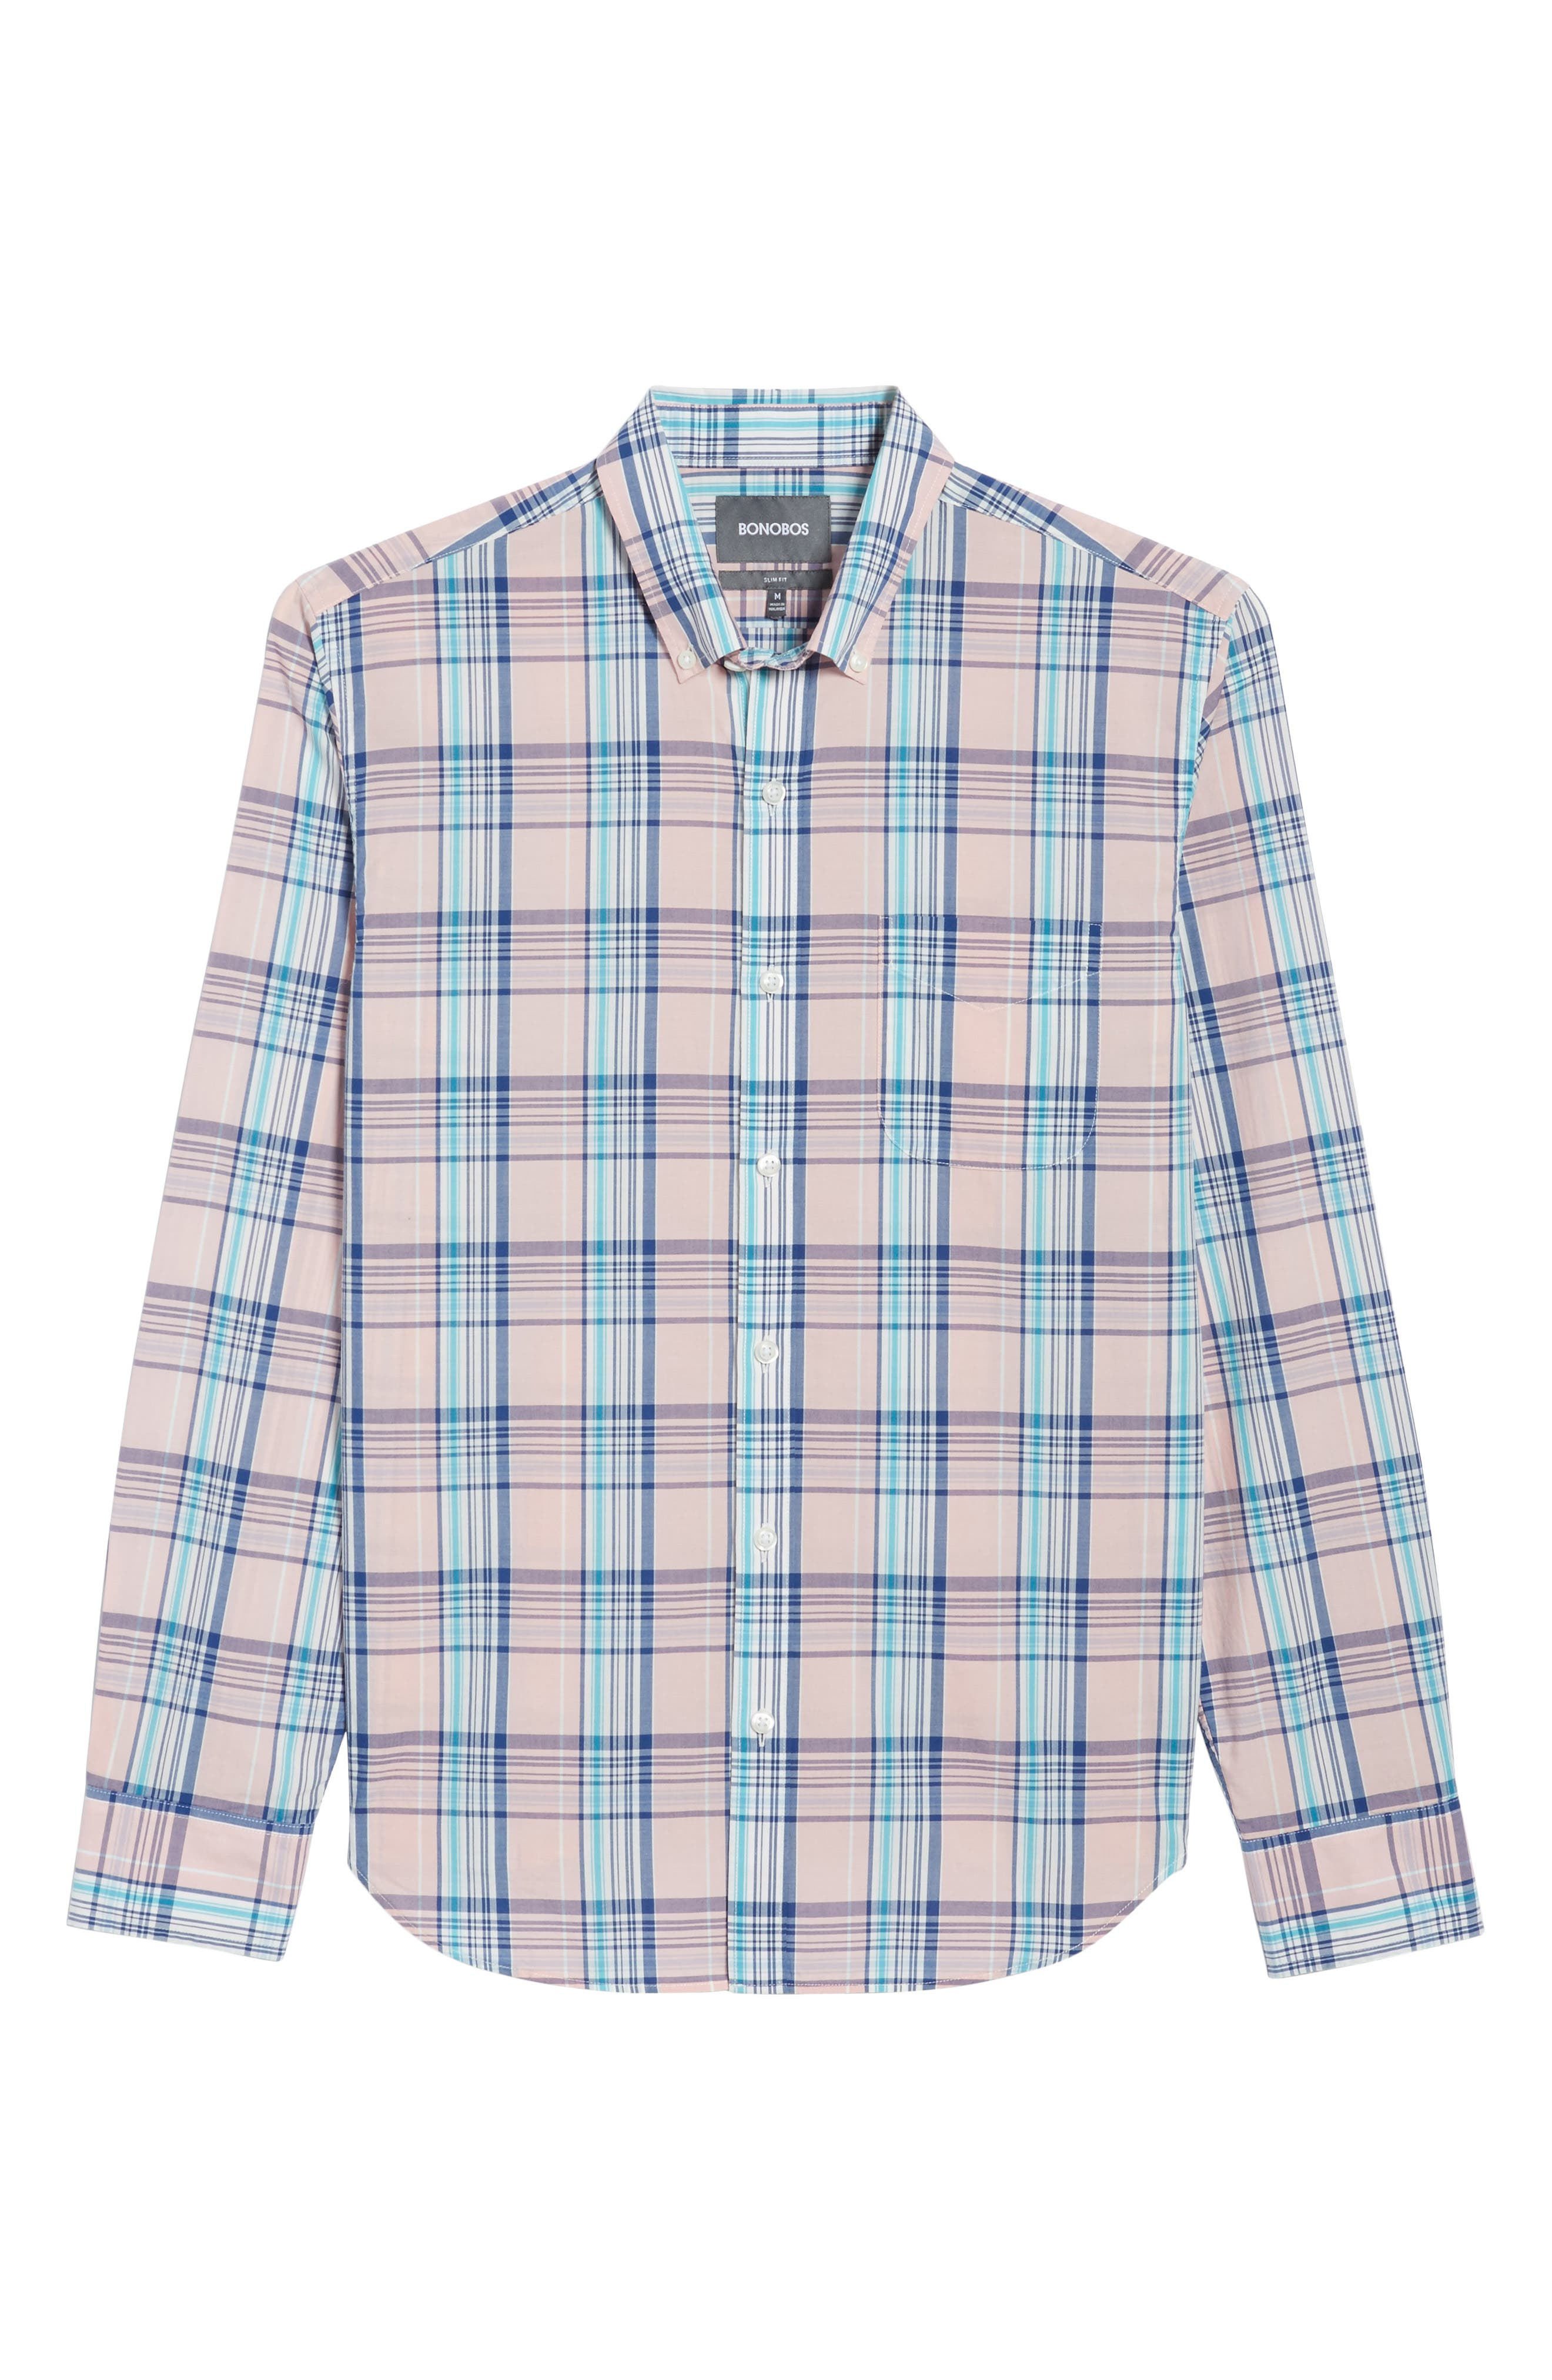 Slim Fit Summerweight Plaid Sport Shirt,                             Alternate thumbnail 6, color,                             650